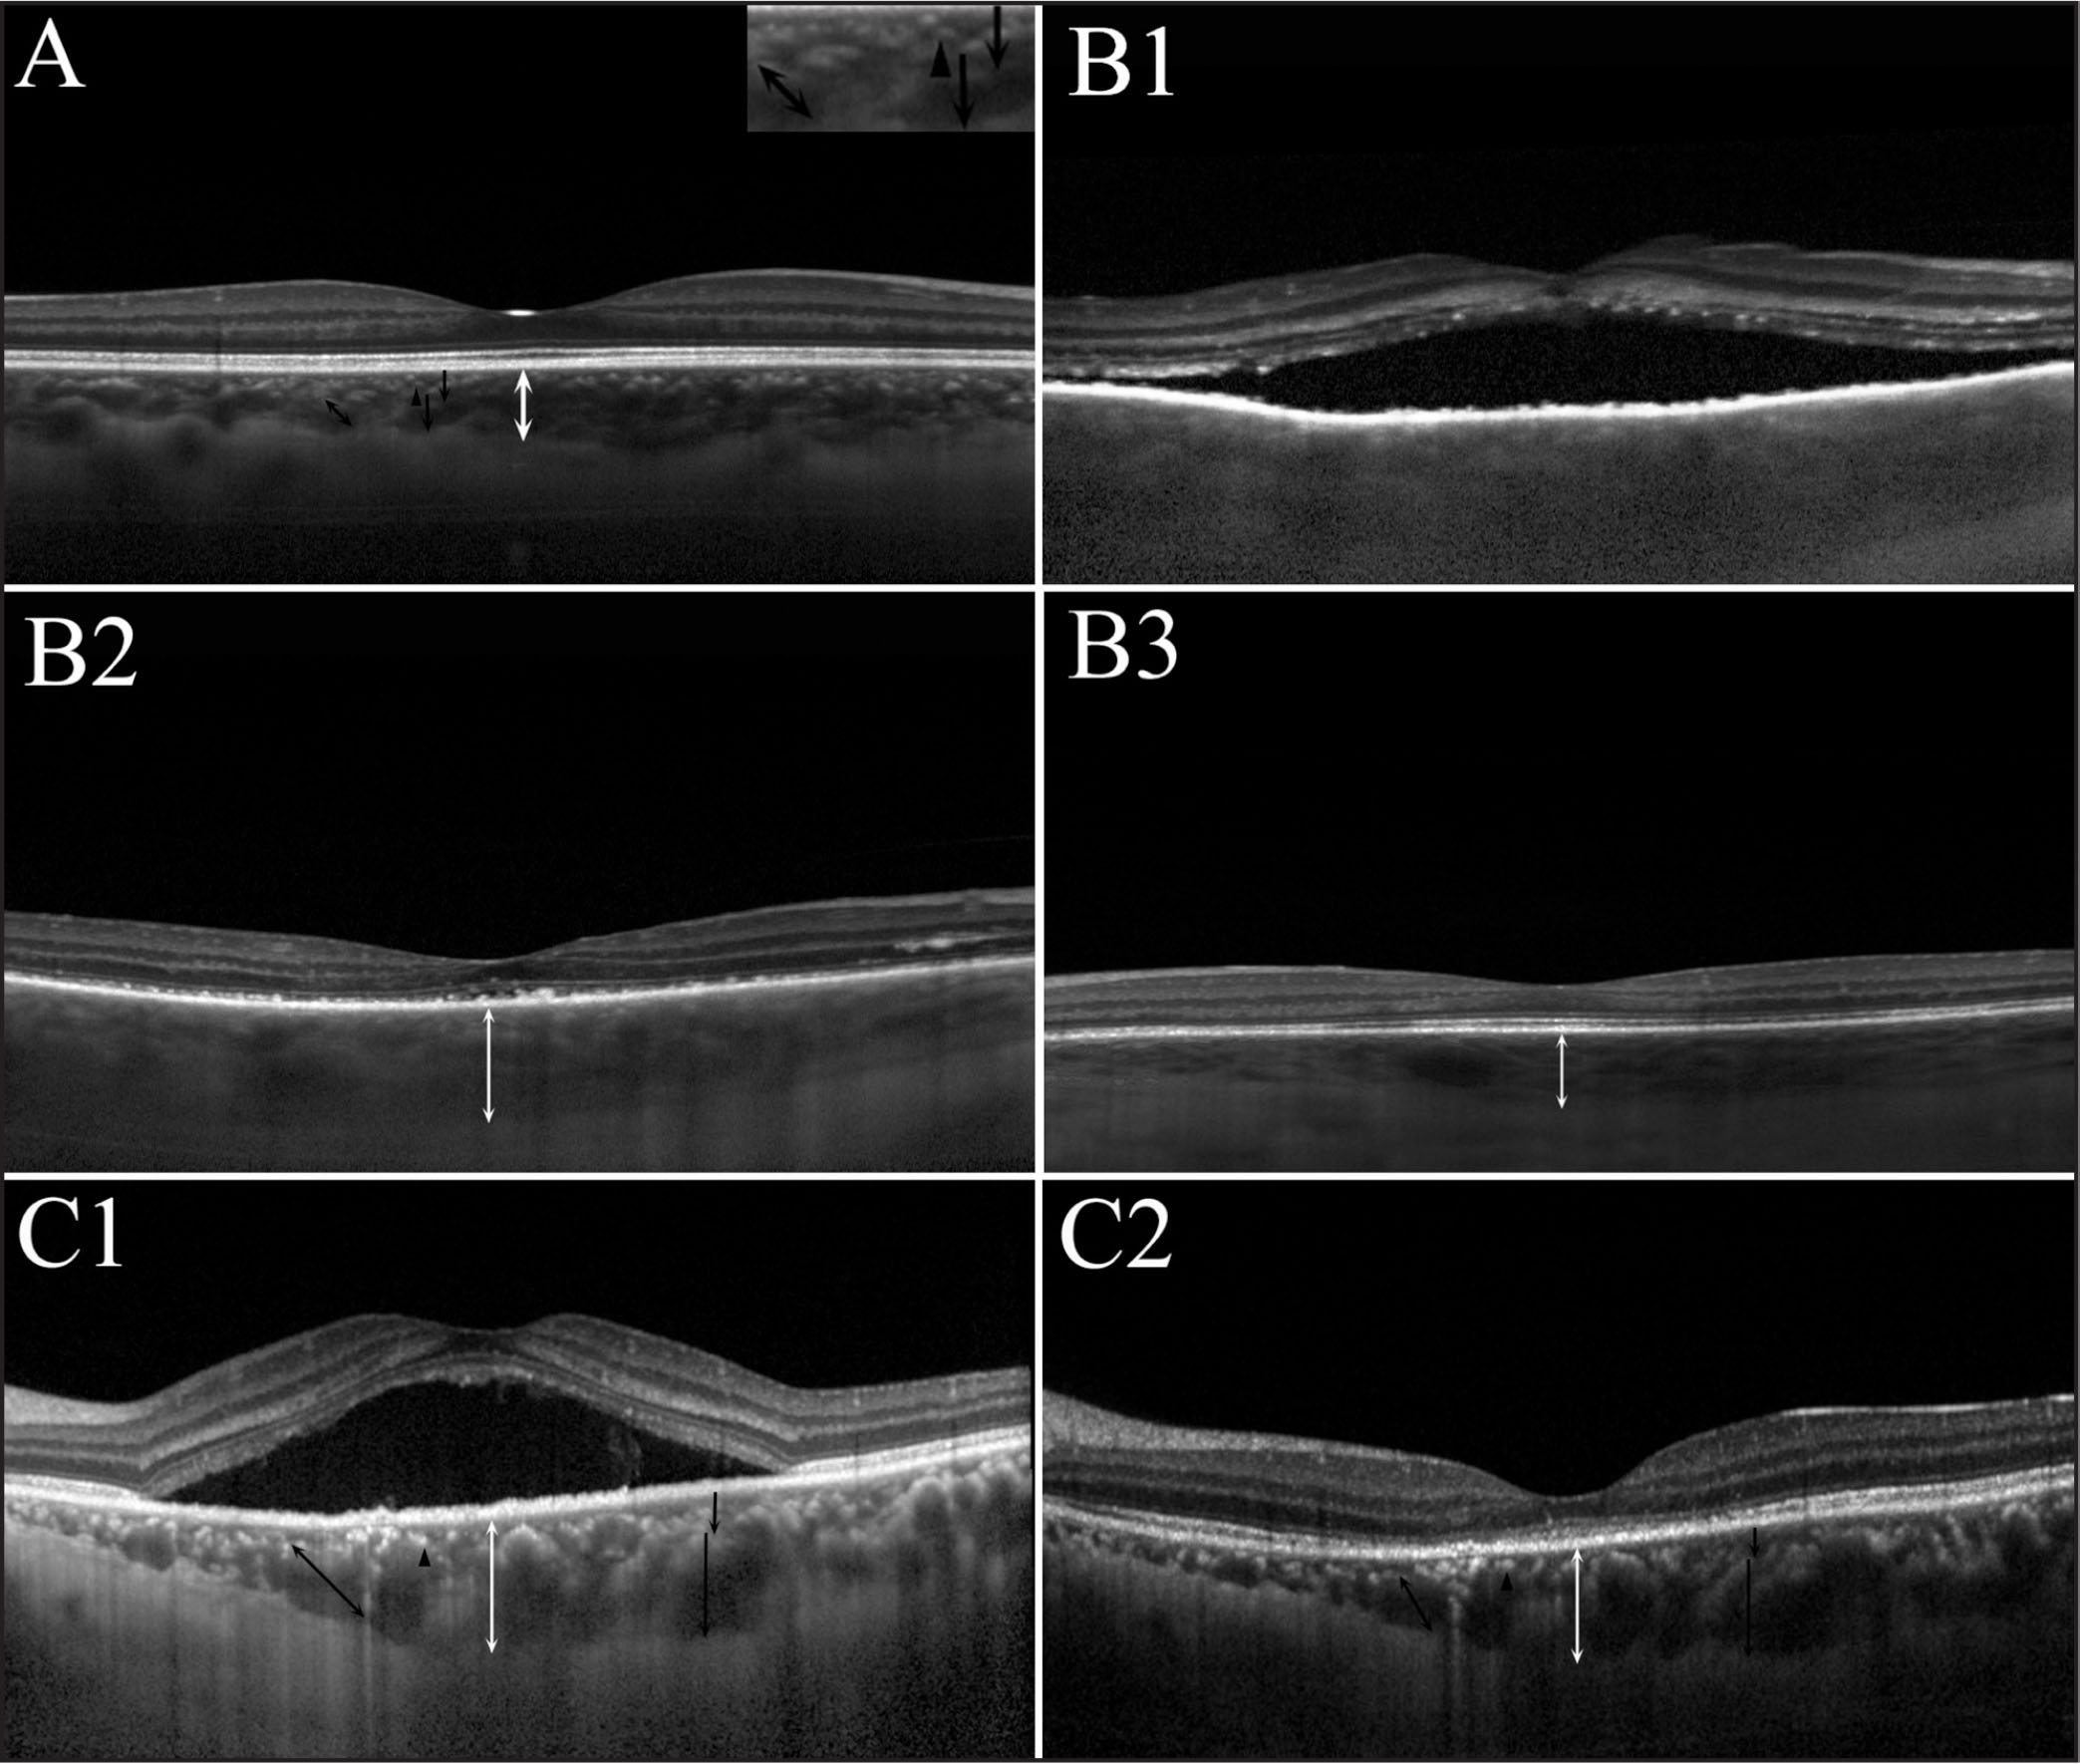 Examples of enhanced depth imaging spectral-domain optical coherence tomography choroidal images for each study group. Black double-headed arrows indicate the diameter of vessels in Haller's layer; black arrowheads identify vessels in Sattler's layer; long black arrows indicate the thickness of Haller's layer; short black arrows indicate the thickness of Sattler's layer. (Top left) The boundary of the choroid and the outline of choroidal vessels were clearly delineated in control participants. (Top right) In acute-stage Vogt-Koyanagi-Harada (VKH) patients, the choroid lost its normal anatomical structure. (Middle left) Following 2 weeks of corticosteroid treatment for acute-stage VKH patients, the exudative retinal detachment was relieved, the choroid was thinner, and the outline of the vessels was more distinct. (Middle right) Patients with convalescent VKH presented with thinner choroids and fewer hyperreflective profiles with hyporeflective cores than did acute-stage VKH patients. (Bottom left, bottom right) Central serous chorioretinopathy patients' choroids were thinner after treatment, but the anatomical structure of the choroids exhibited little change.